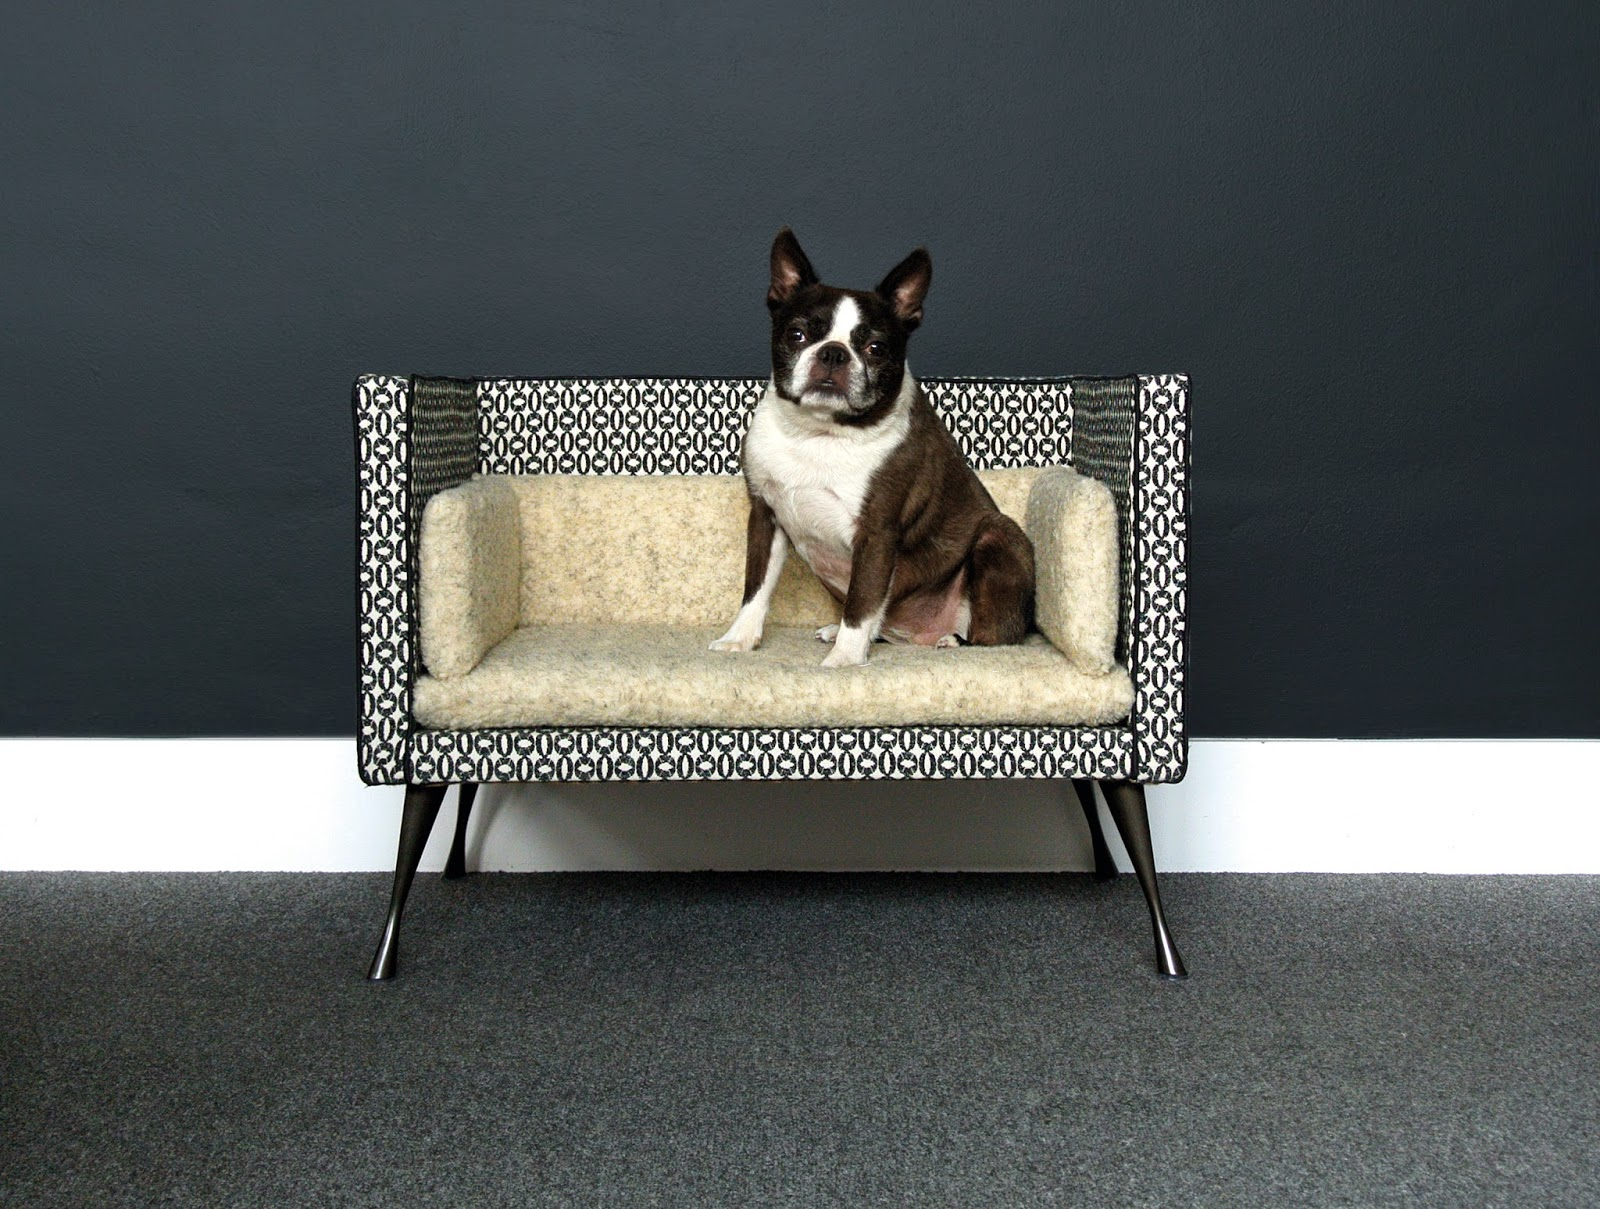 savoir beds top dog  introducing our luxury pet bed - the adorable bed is upholstered in a monochrome scandi style larsenbaytown fabric with cosy sherpa fleece cushion pads which are removable andmachine